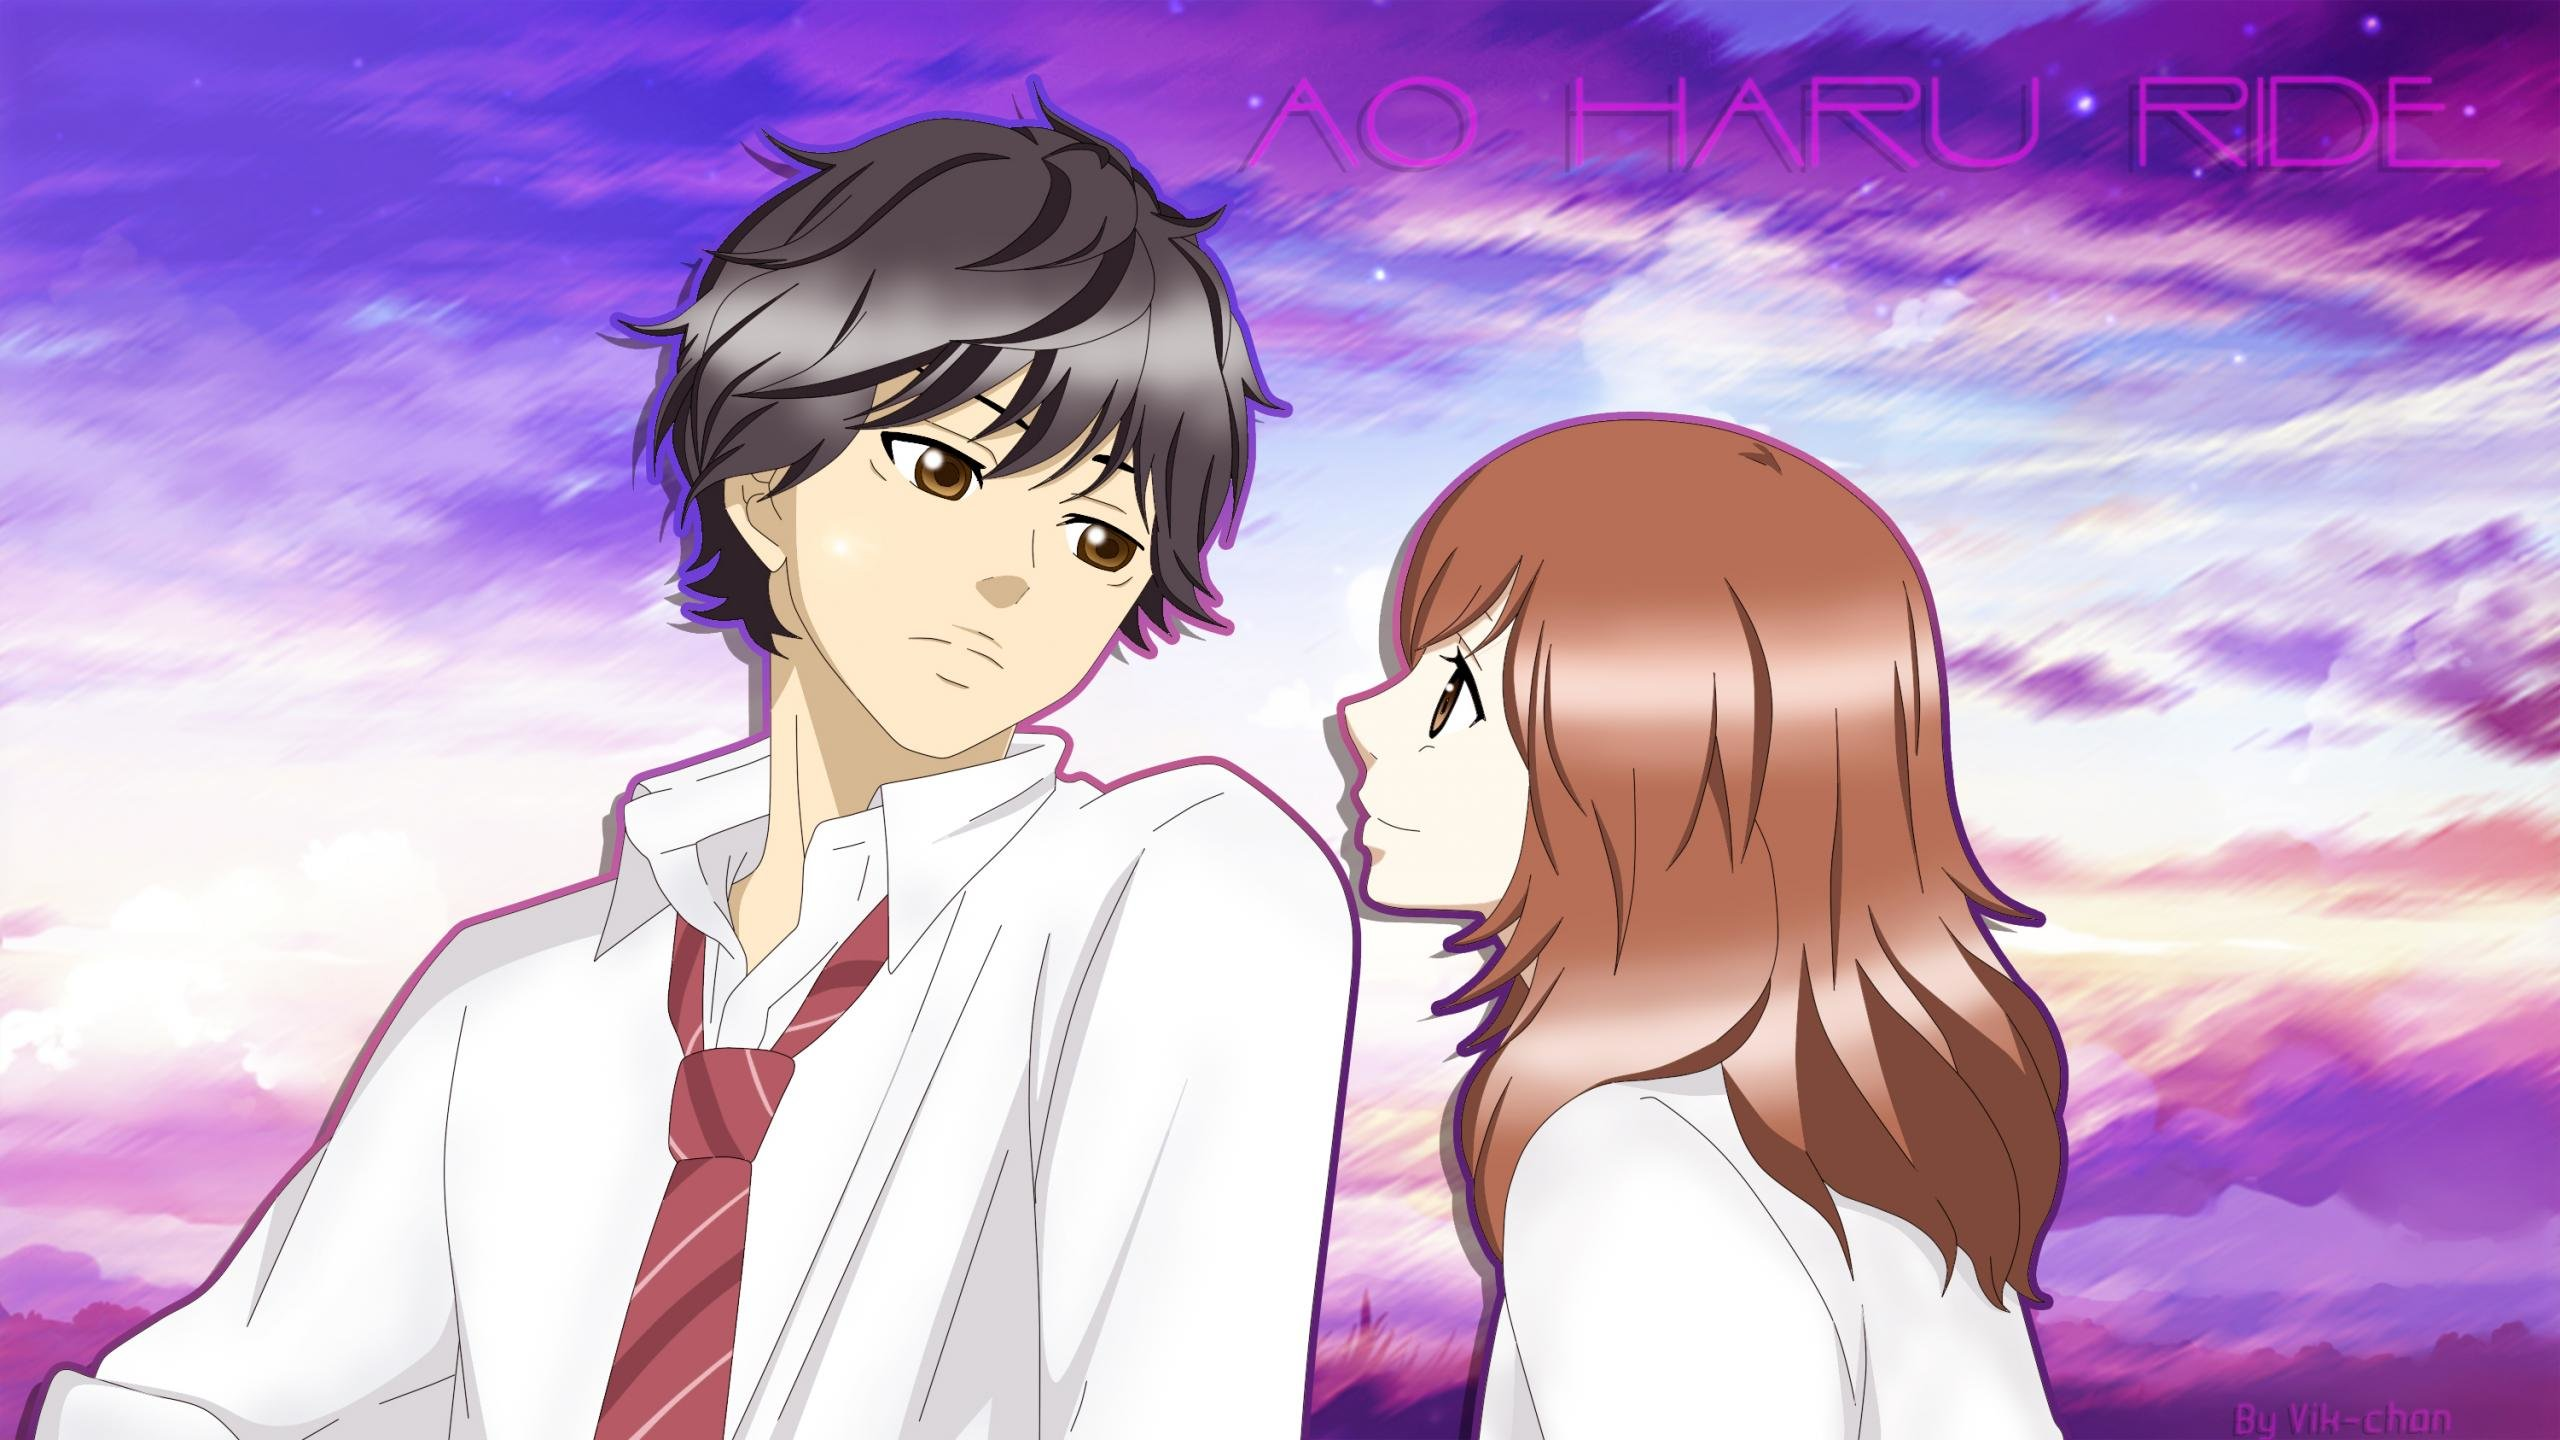 Awesome Ao Haru Ride free wallpaper ID:73846 for hd 2560x1440 computer